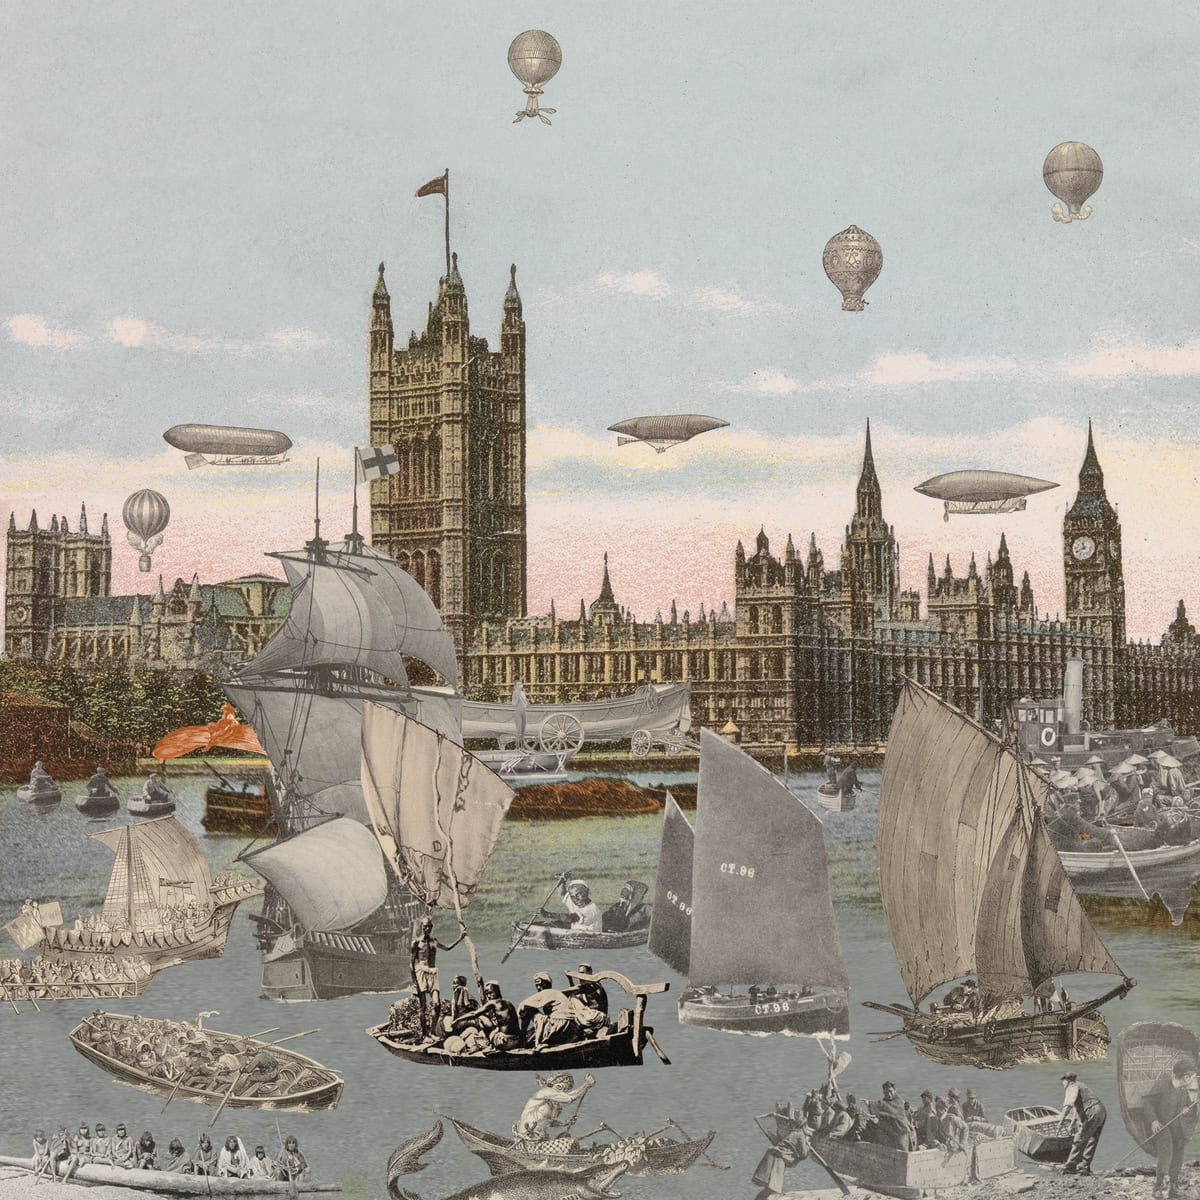 Peter Blake London- River Thames- Regatta, 2012 Silkscreen print on 410gsm Somerset Tub Sized Signed and numbered by artist. 66.6. x 65.2 cm Edition of 100